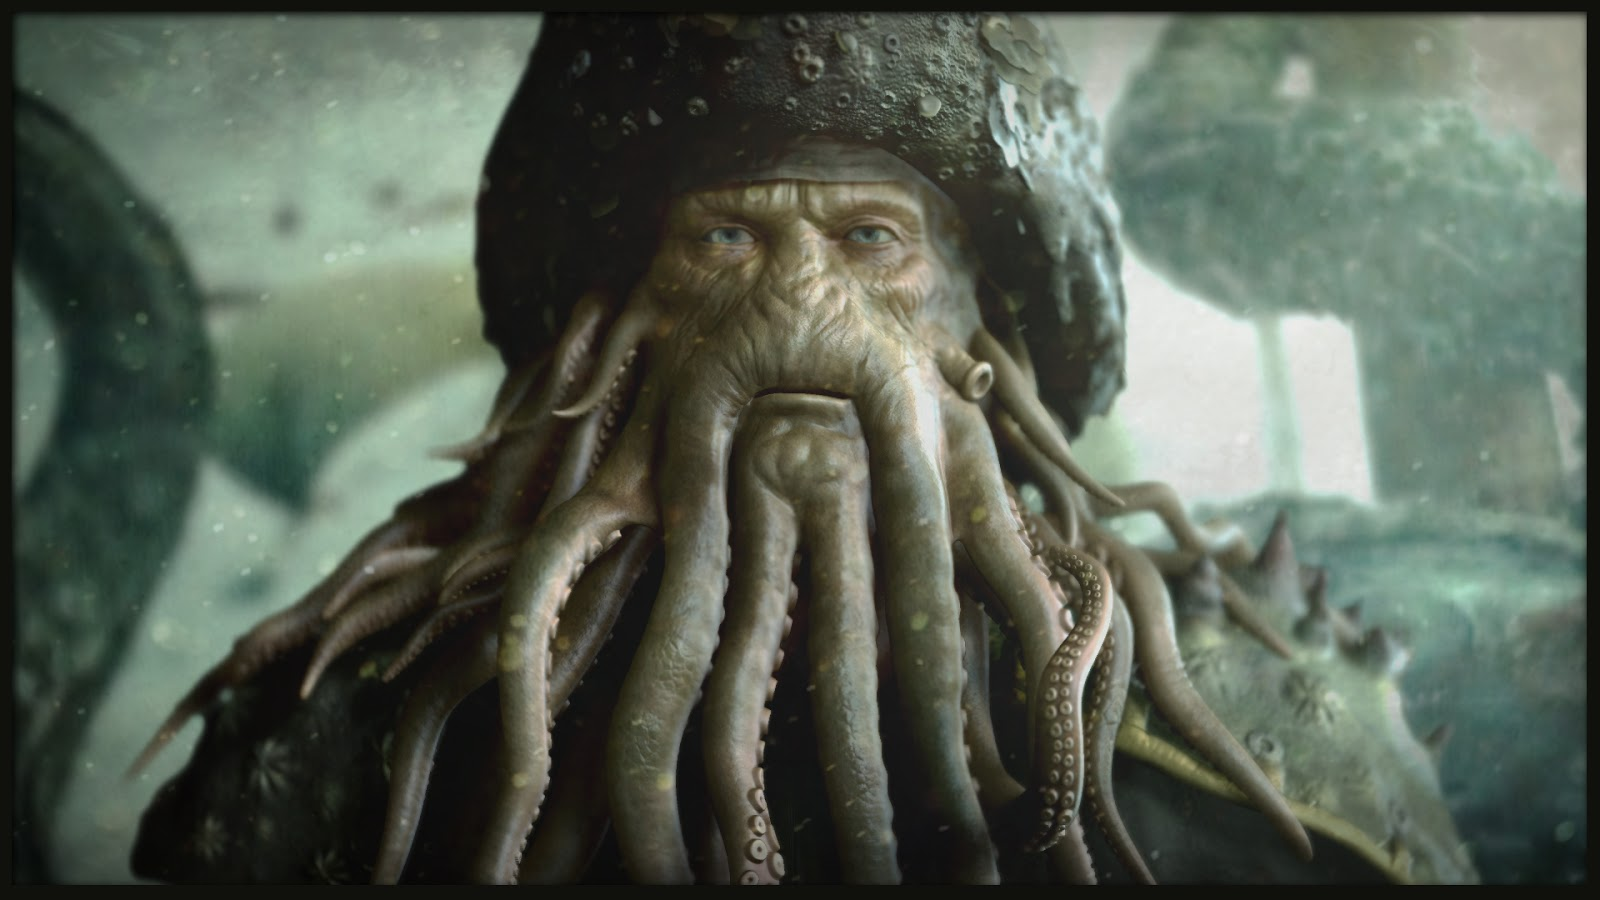 the life and leadership of davy jones in pirates of the caribbean Davy jones' monstrous crew is made up from the doomed sailors who have  opted to  leader davy jones will turner notable members bootstrap bill  turner  the dutchman's crewmen hold the pirates prisoners  everyday life  edit.